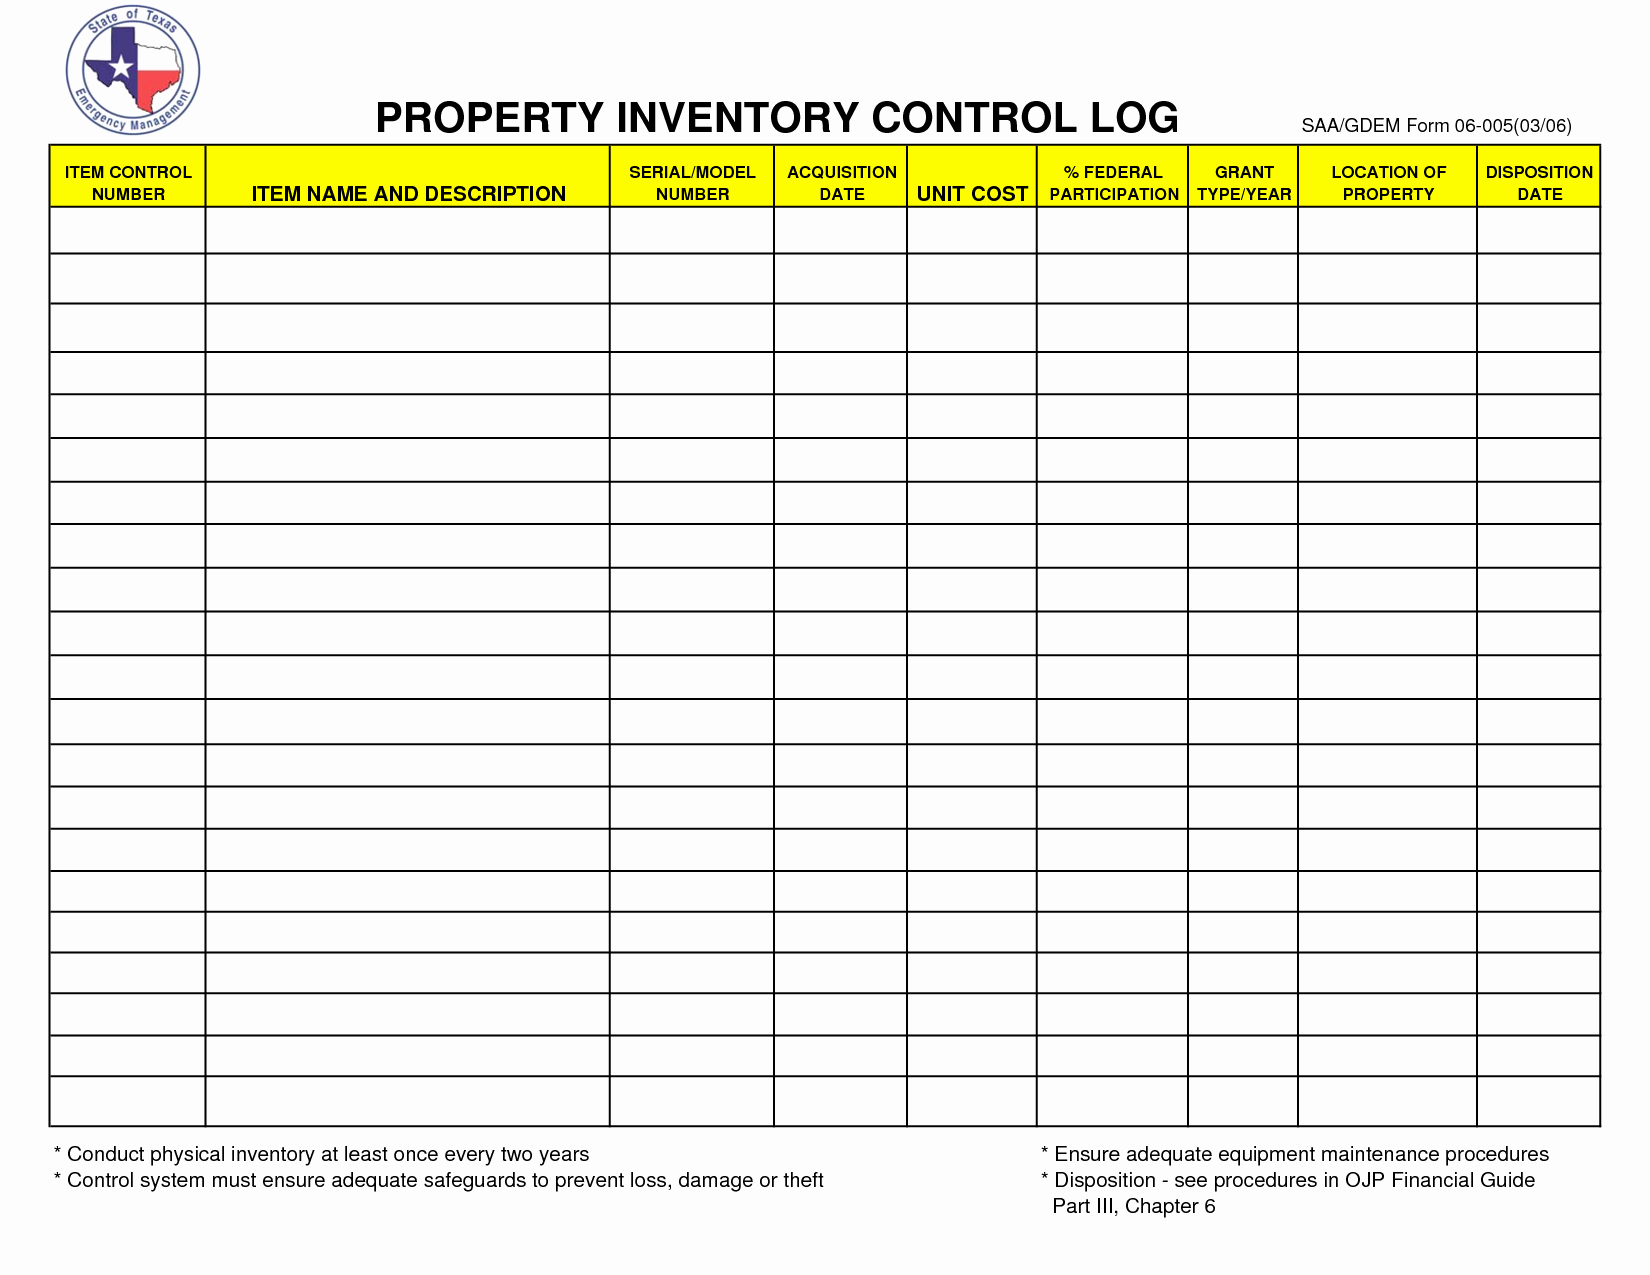 Inventory Management In Excel Free Download Best Of Stock Control With Inventory Management System In Excel Free Download